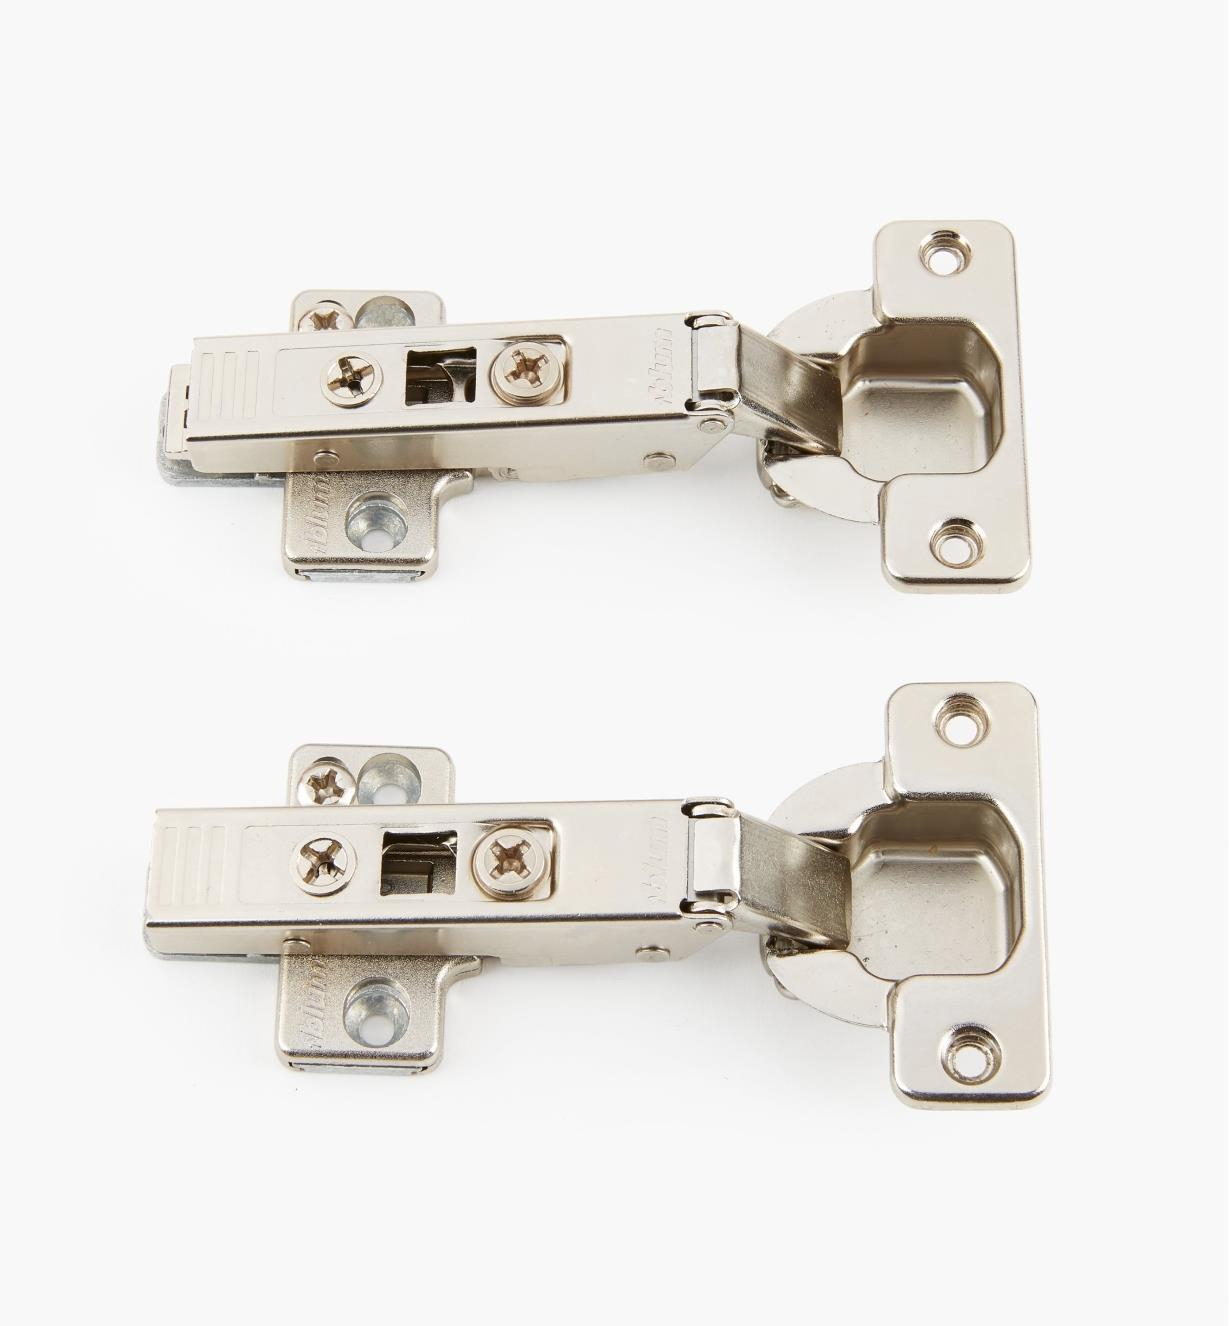 00B1520 - 120° Overlay Clip-Top Hinges, pr.